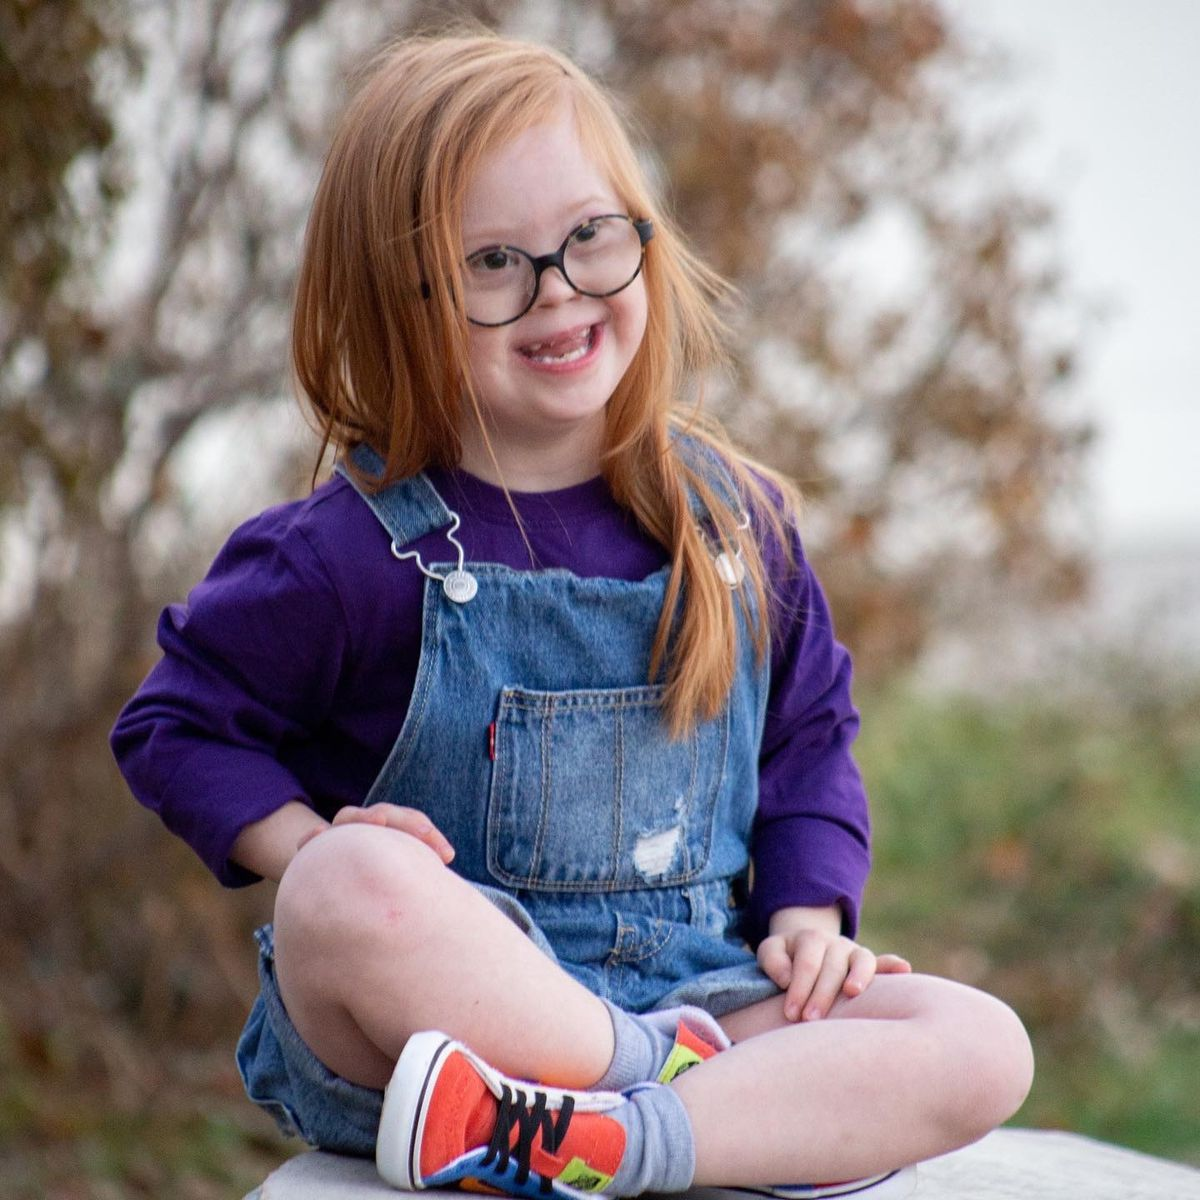 A little girl with Down syndrome smiles at the camera. She is sitting cross-legged outside. She is wearing glasses, jean overalls and a purple shirt.